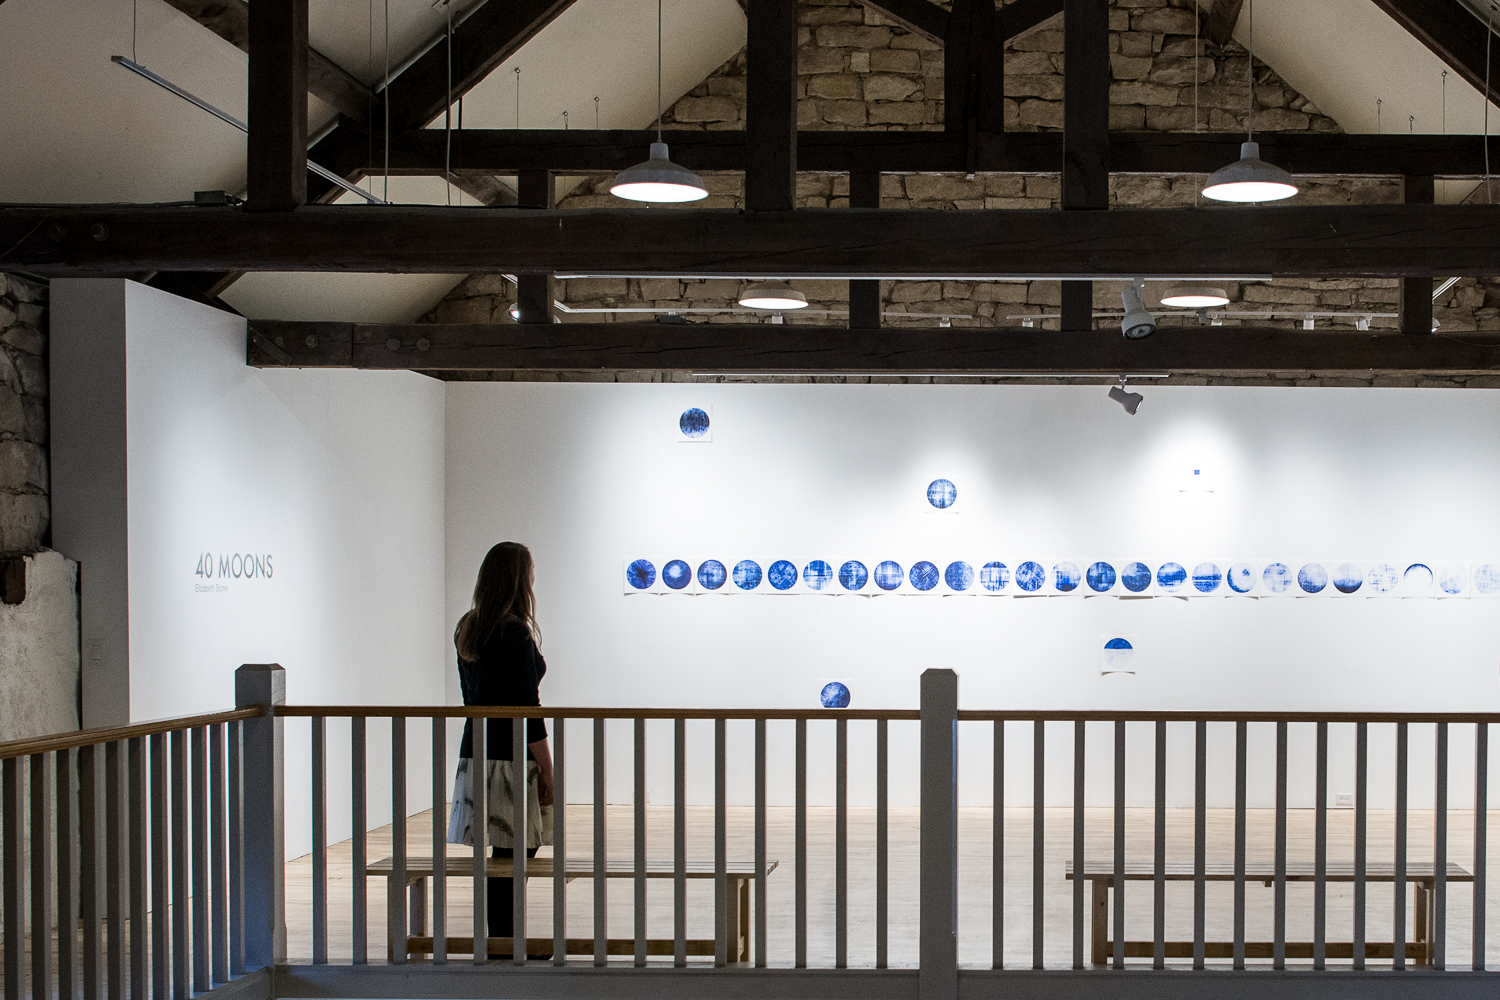 40 Moons Exhibition